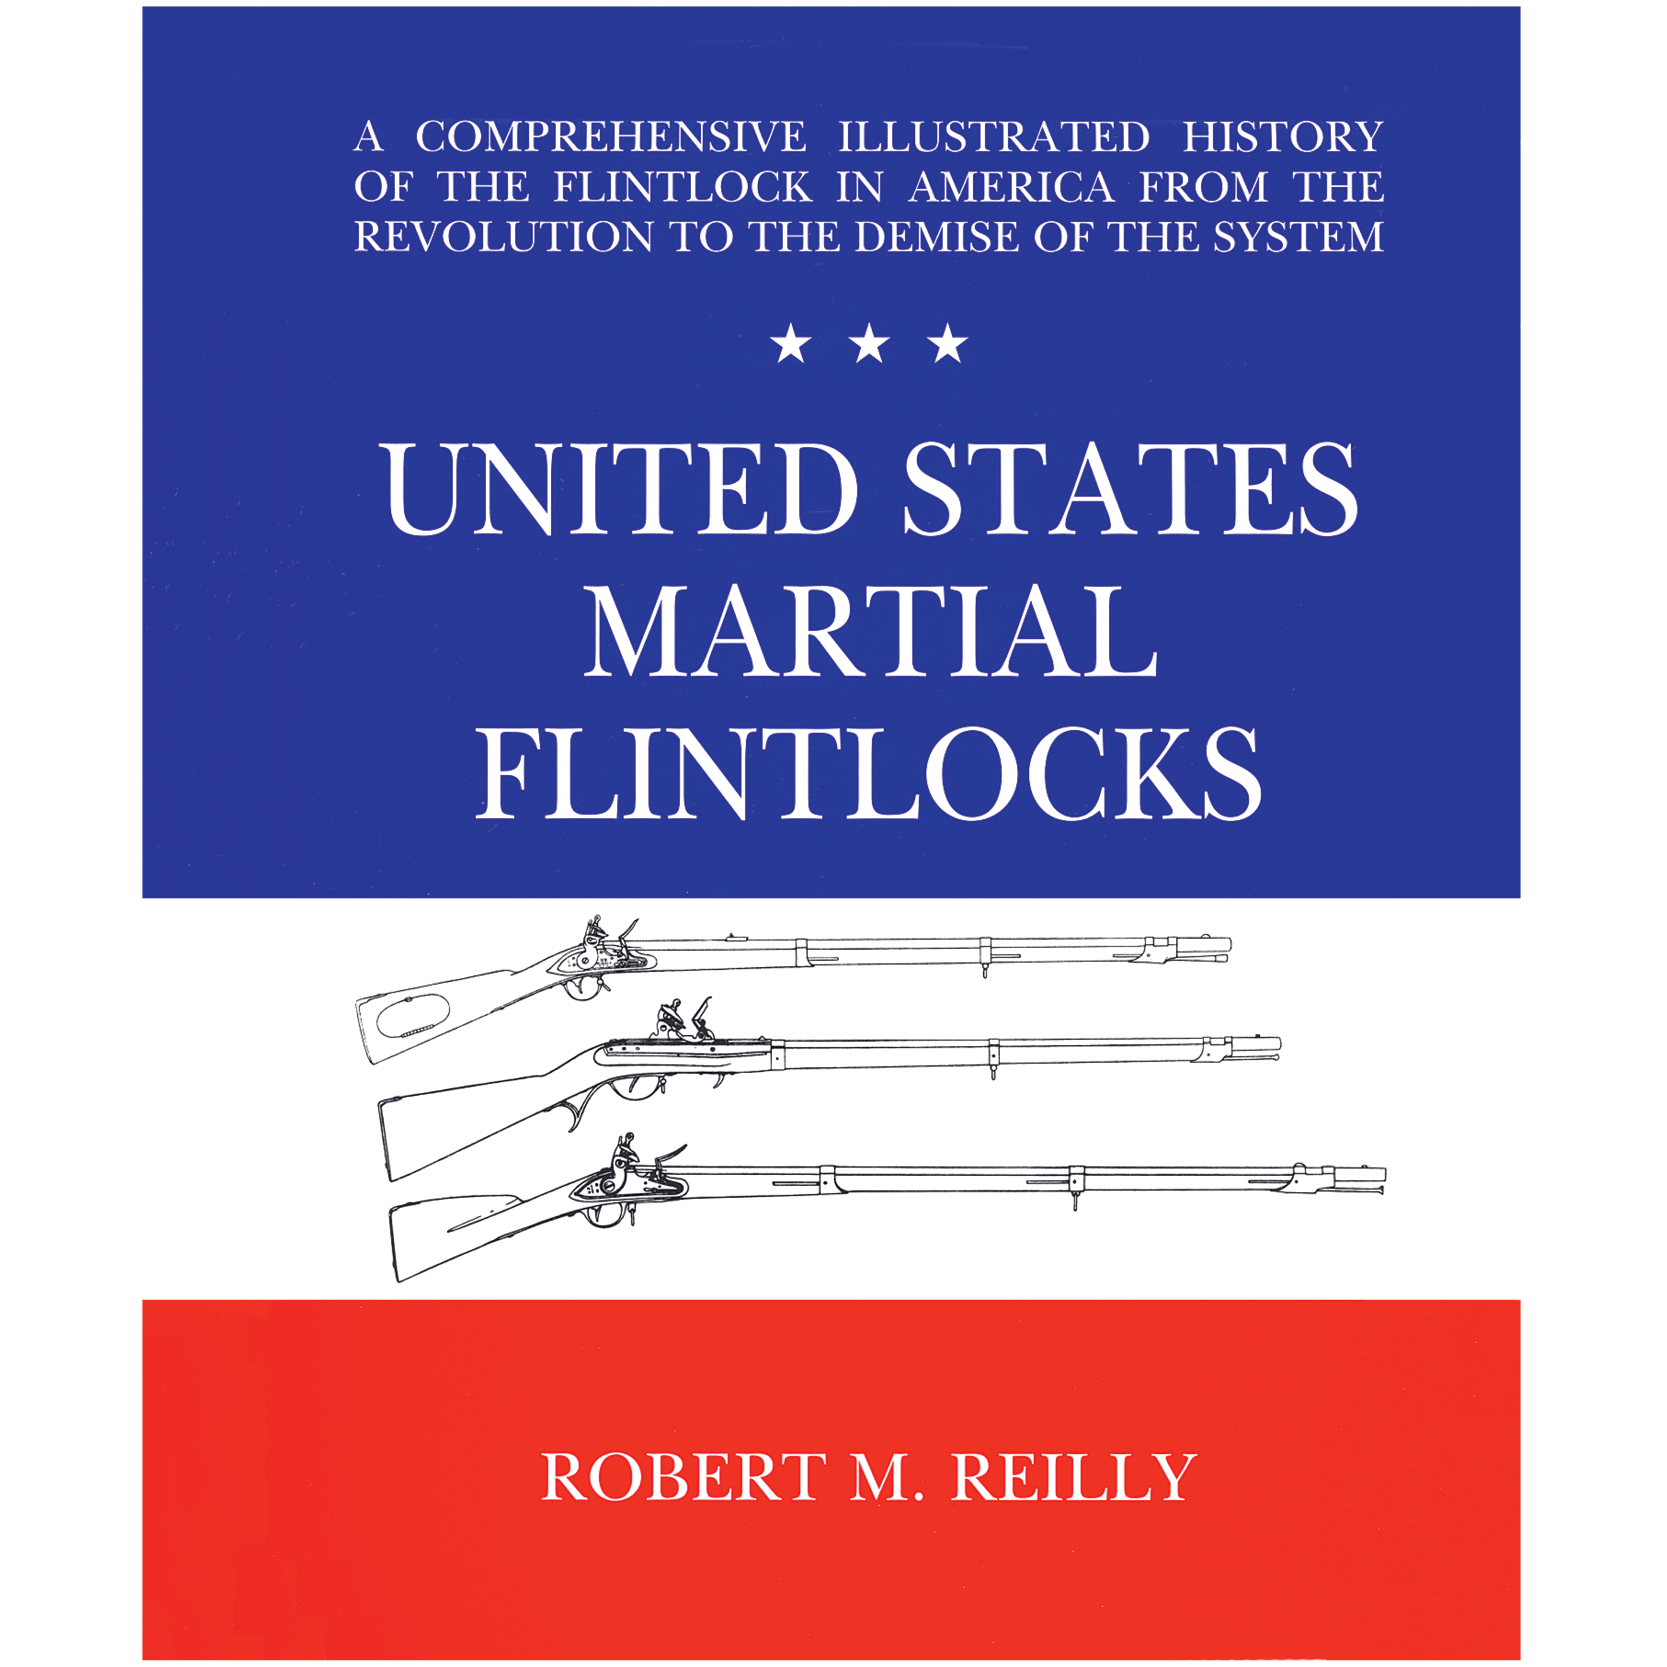 U.S. Martial Flintlocks By Robert M. Reilly